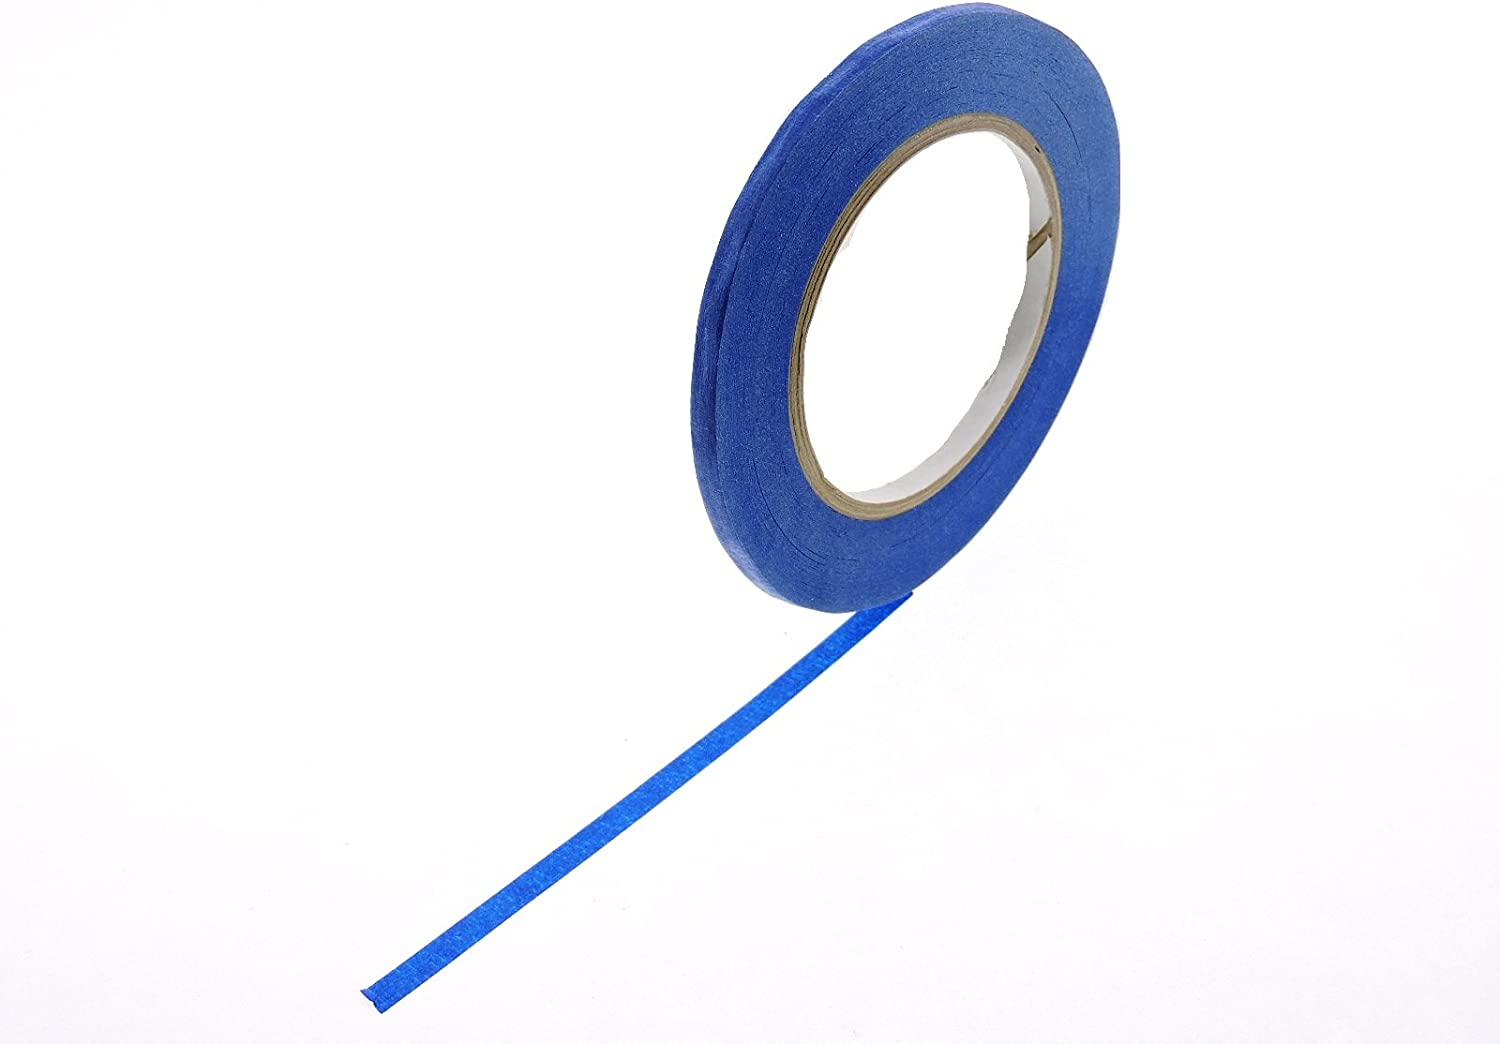 """3pk 1/4 1/2 3/4\"""" in x 60 yd Blue Painters Tape Medium High Tack Sticky Paper Masking Tape Edging Small Projects Fine Trim Detailing Multi Surface Clean Release 21 Day Easy Removal No Residue 6MM-18MM"""